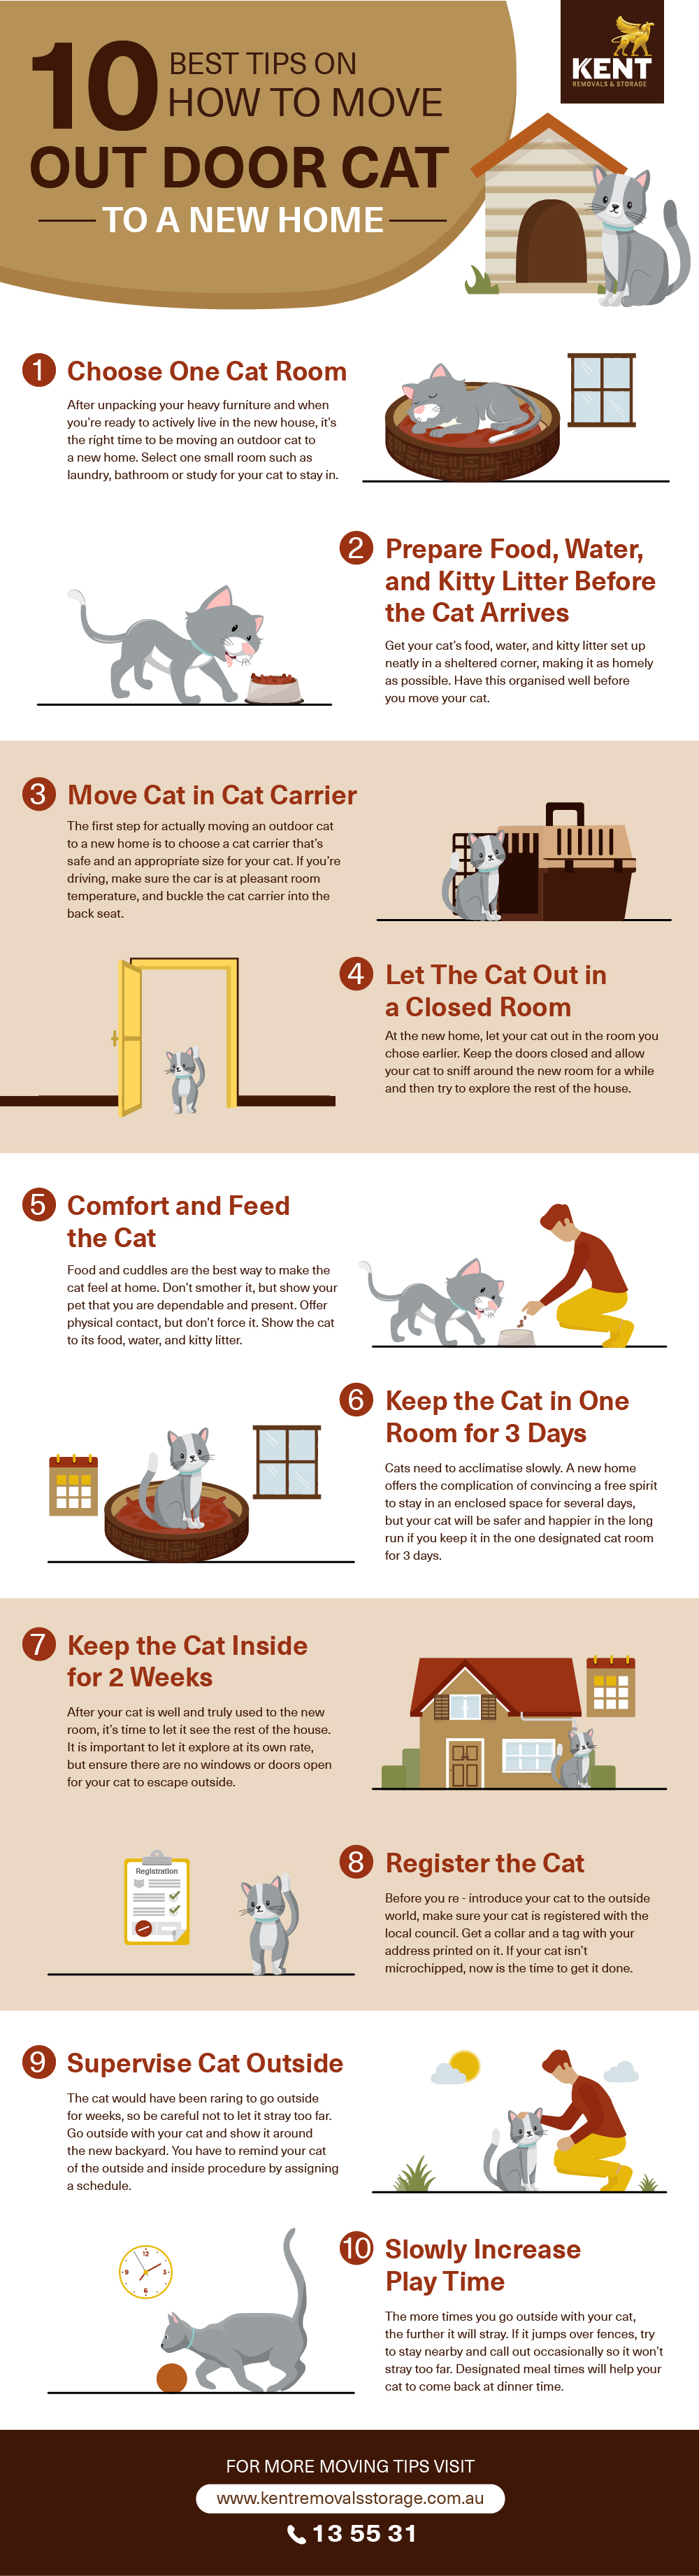 10 Best Tips on How To Move Outdoor Cat To New Home